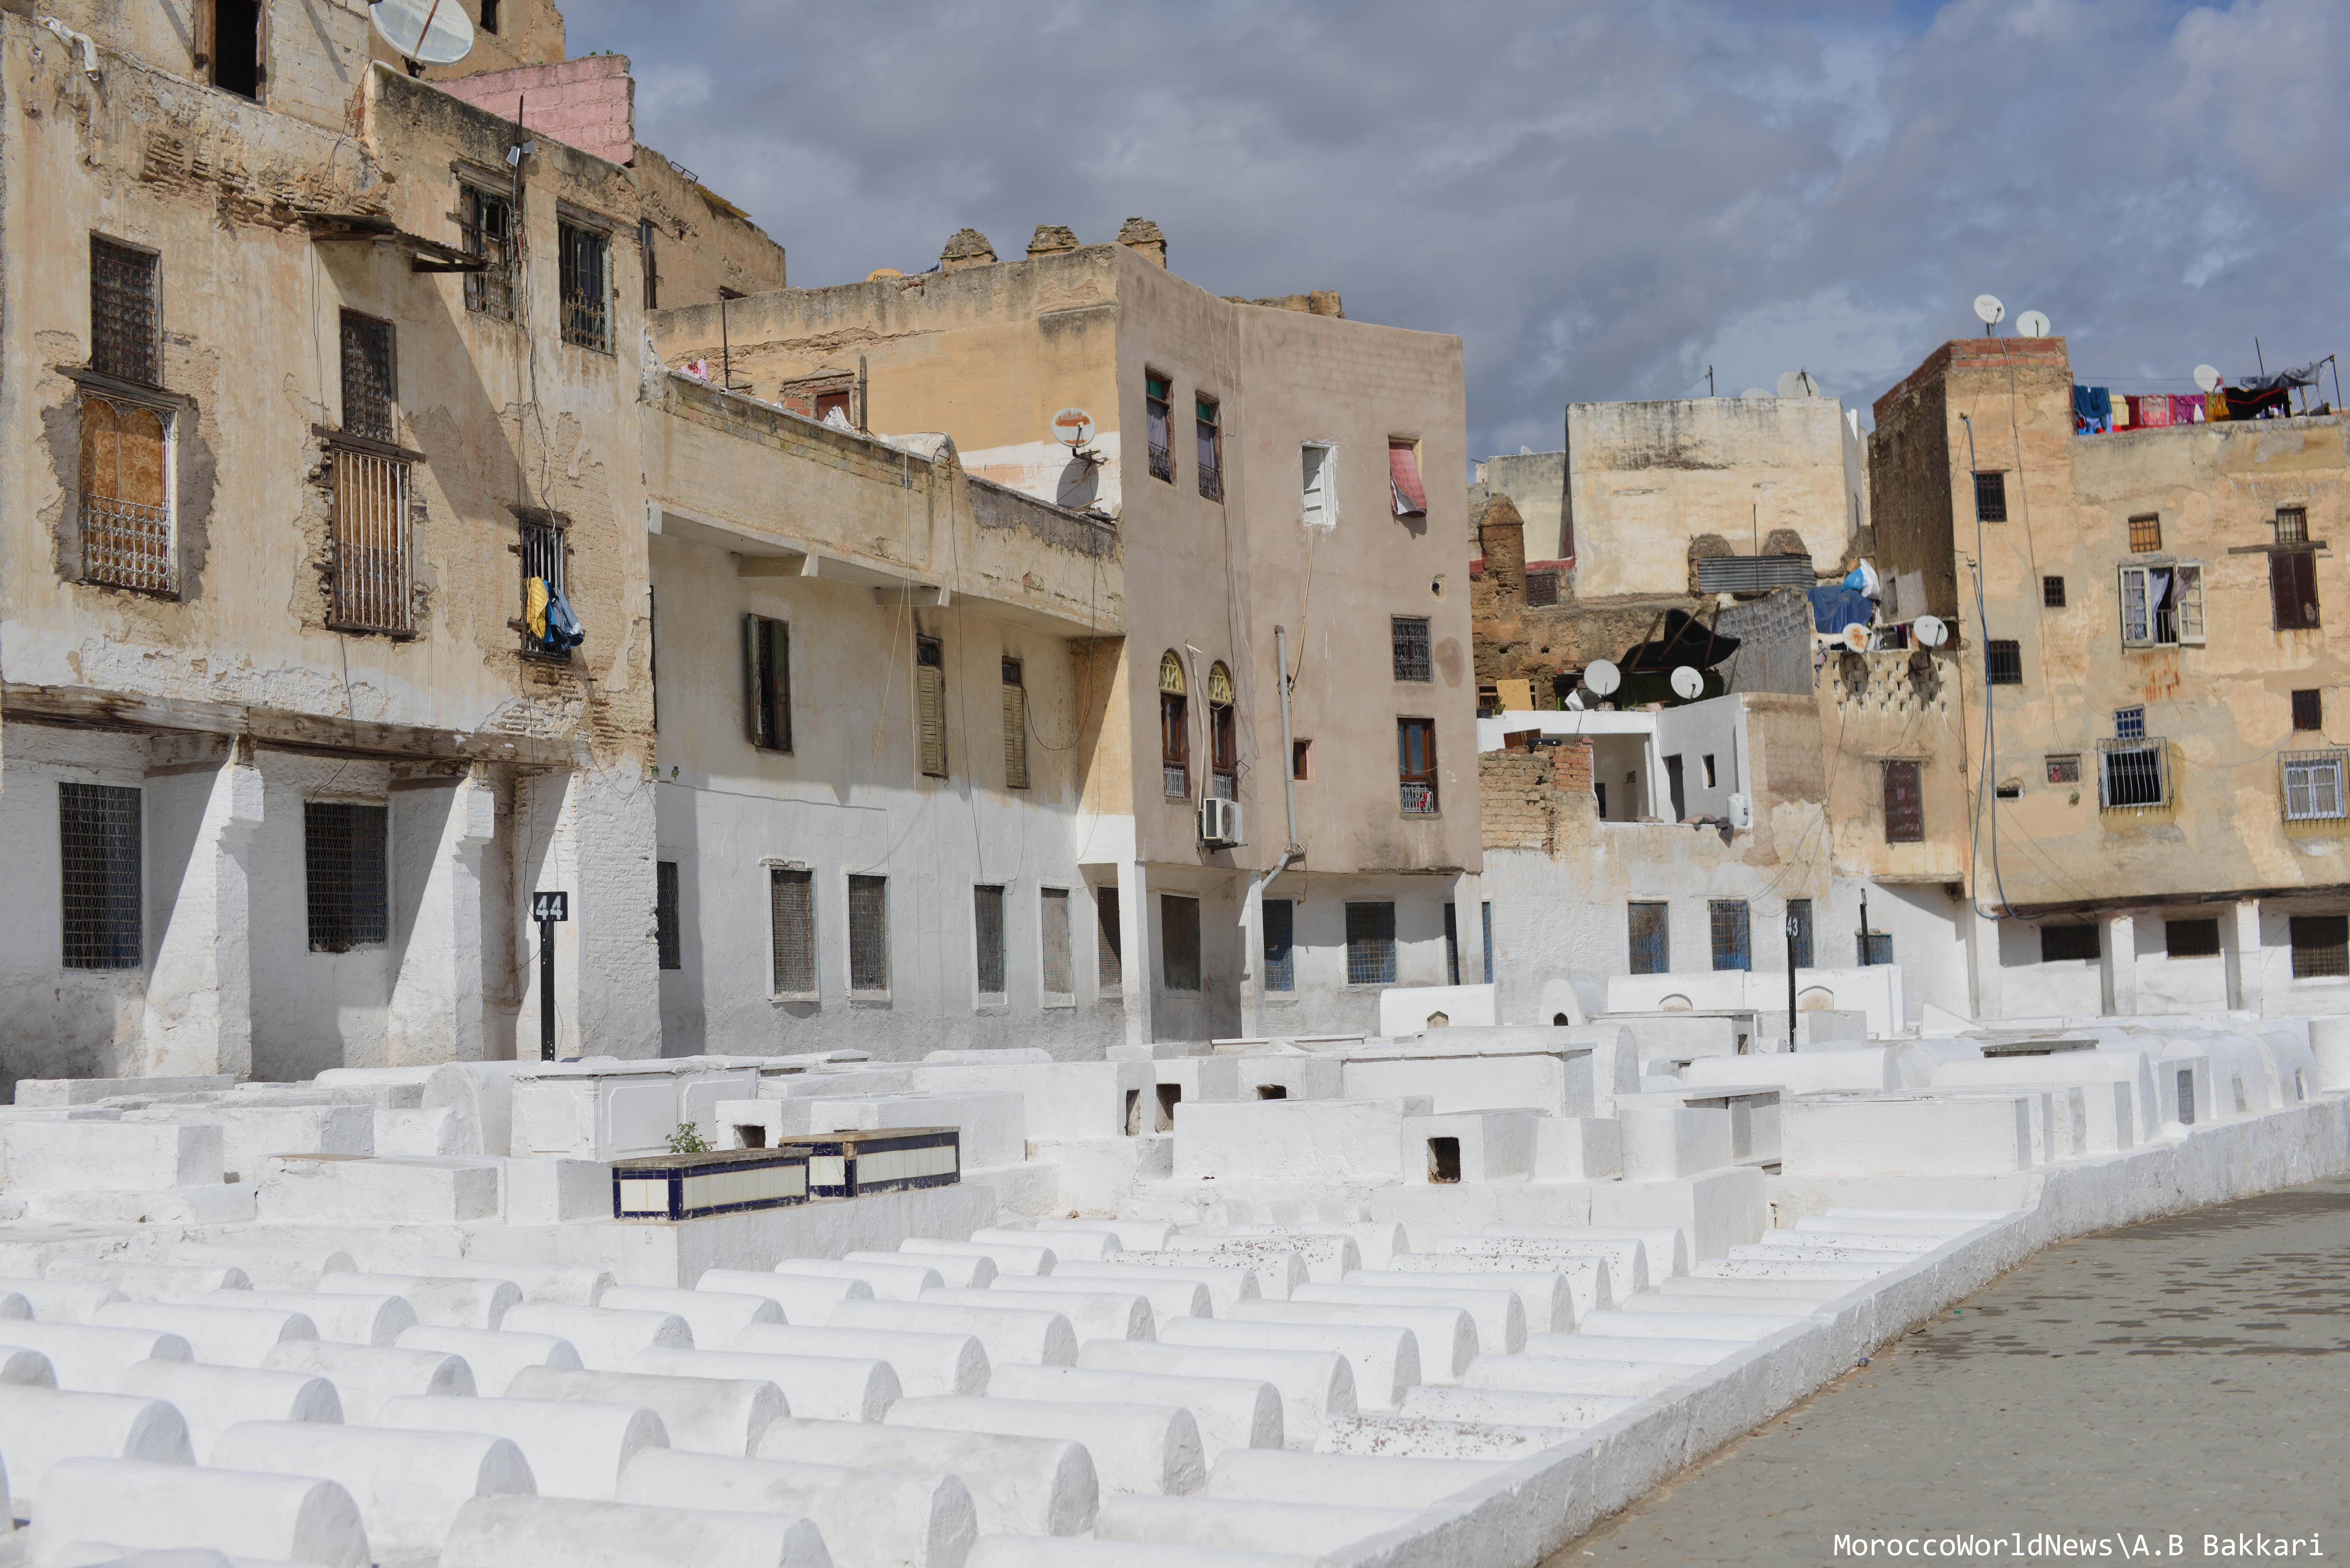 In Photos: Remembering Moroccan Jewry at the Fez Jewish Cemetery